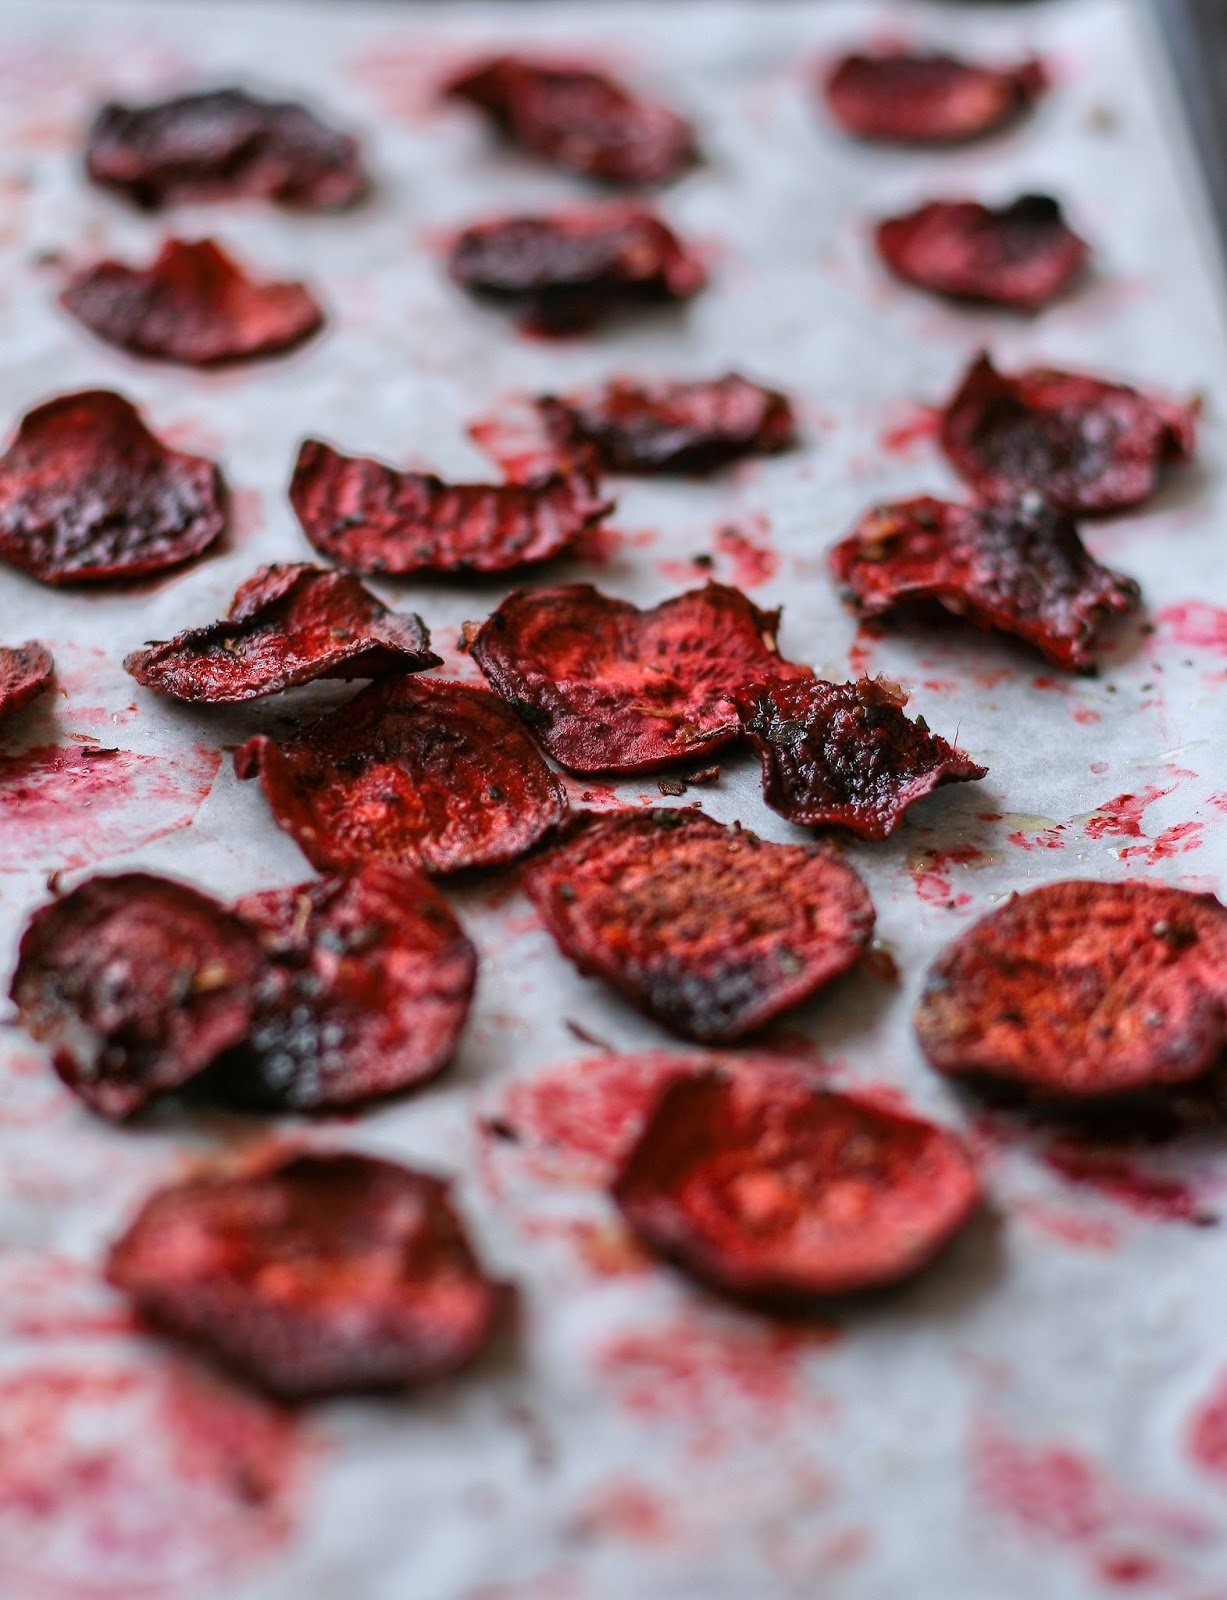 Homemade beetroot chips.